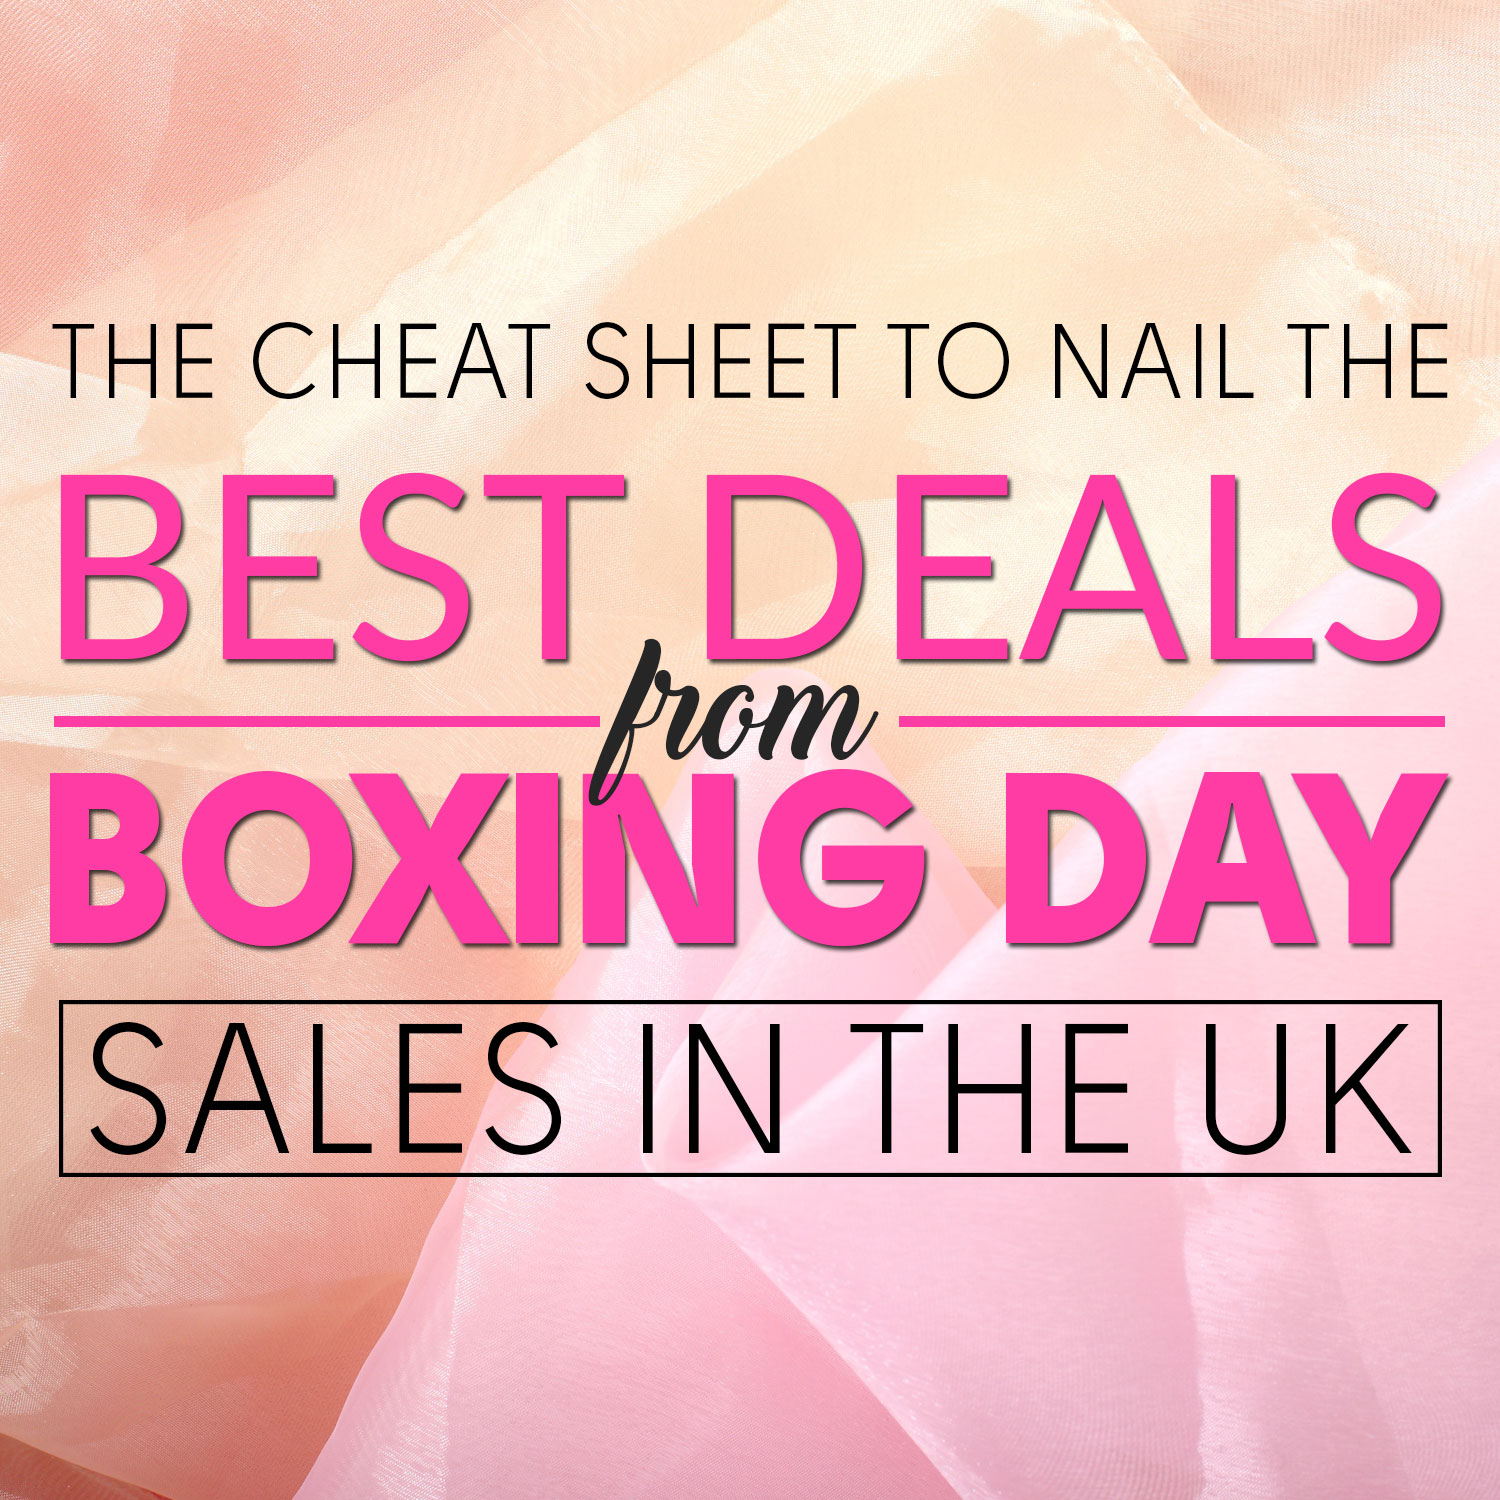 The Cheat Sheet to Nail the Best Deals from Boxing Day Sales in the UK